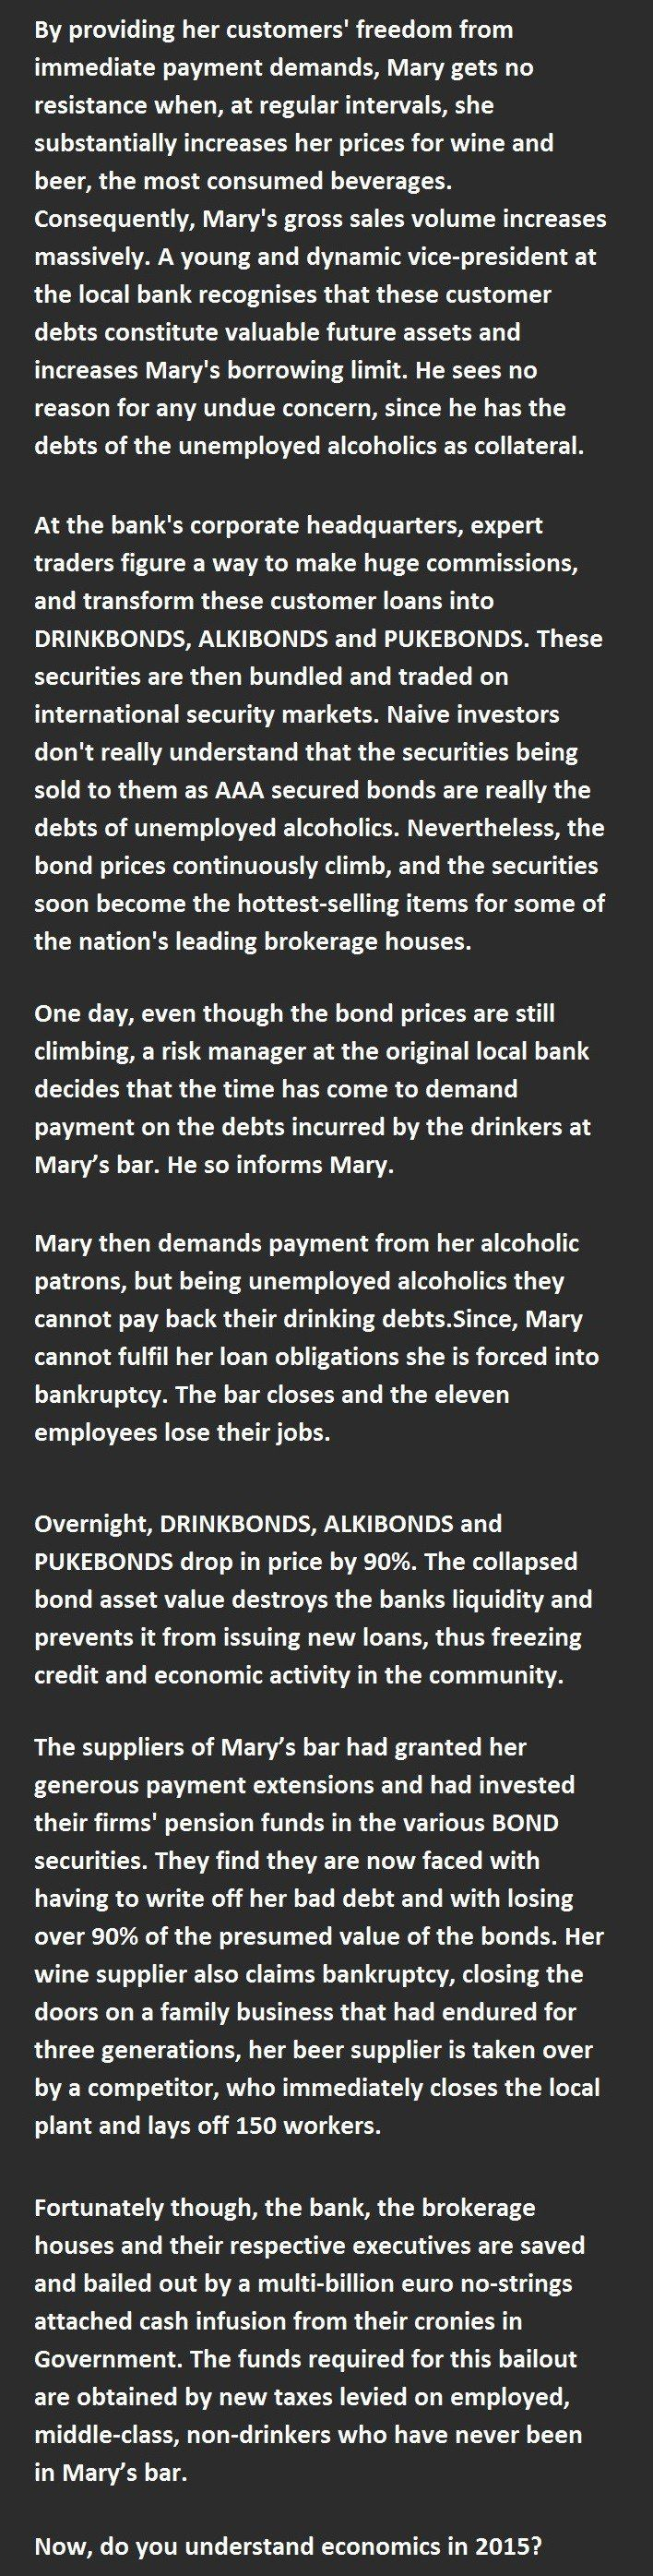 This Woman Just Explained Economics In A Nutshell. And It's So True It Hurts!!!